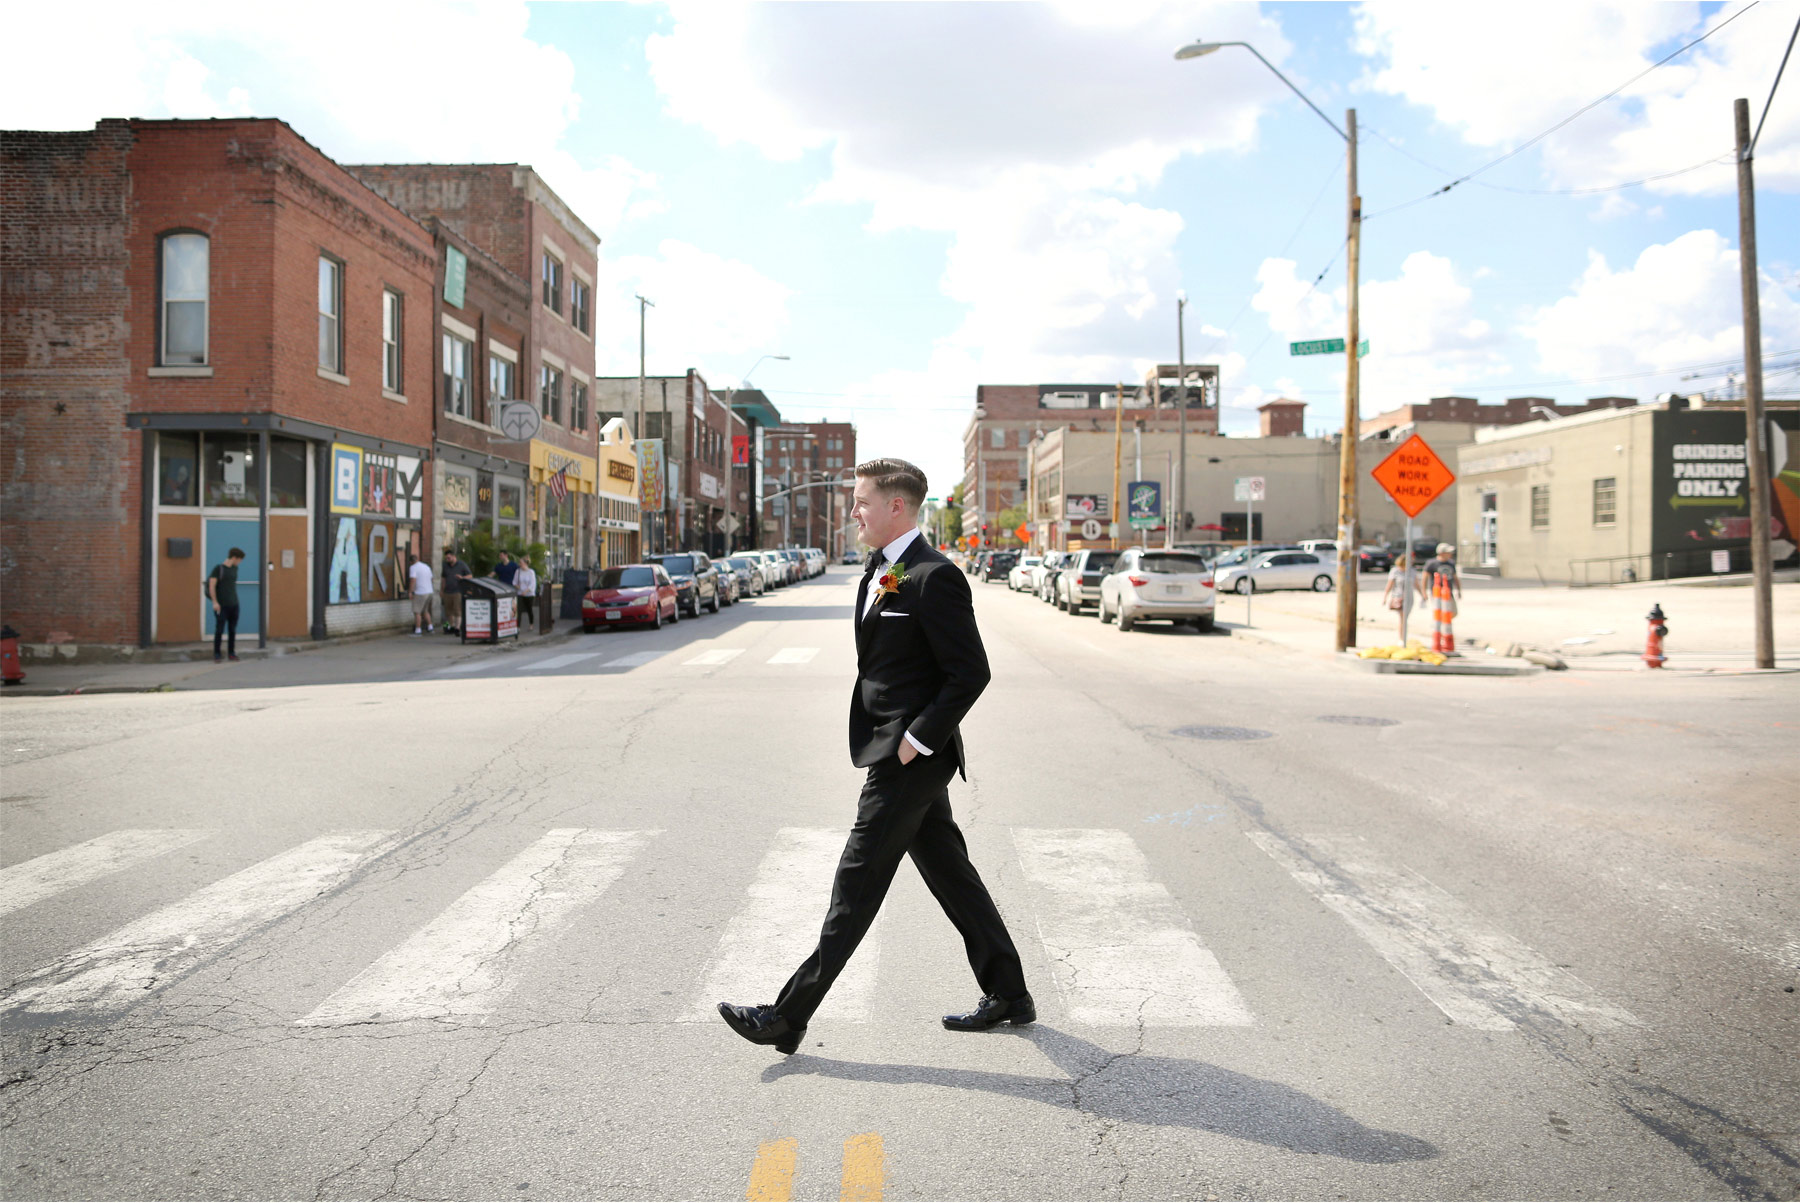 04-Kansas-City-Missouri-Destination-Wedding-Photography-by-Vick-Photography-Groom-Downtown-Carly-and-Kenny.jpg